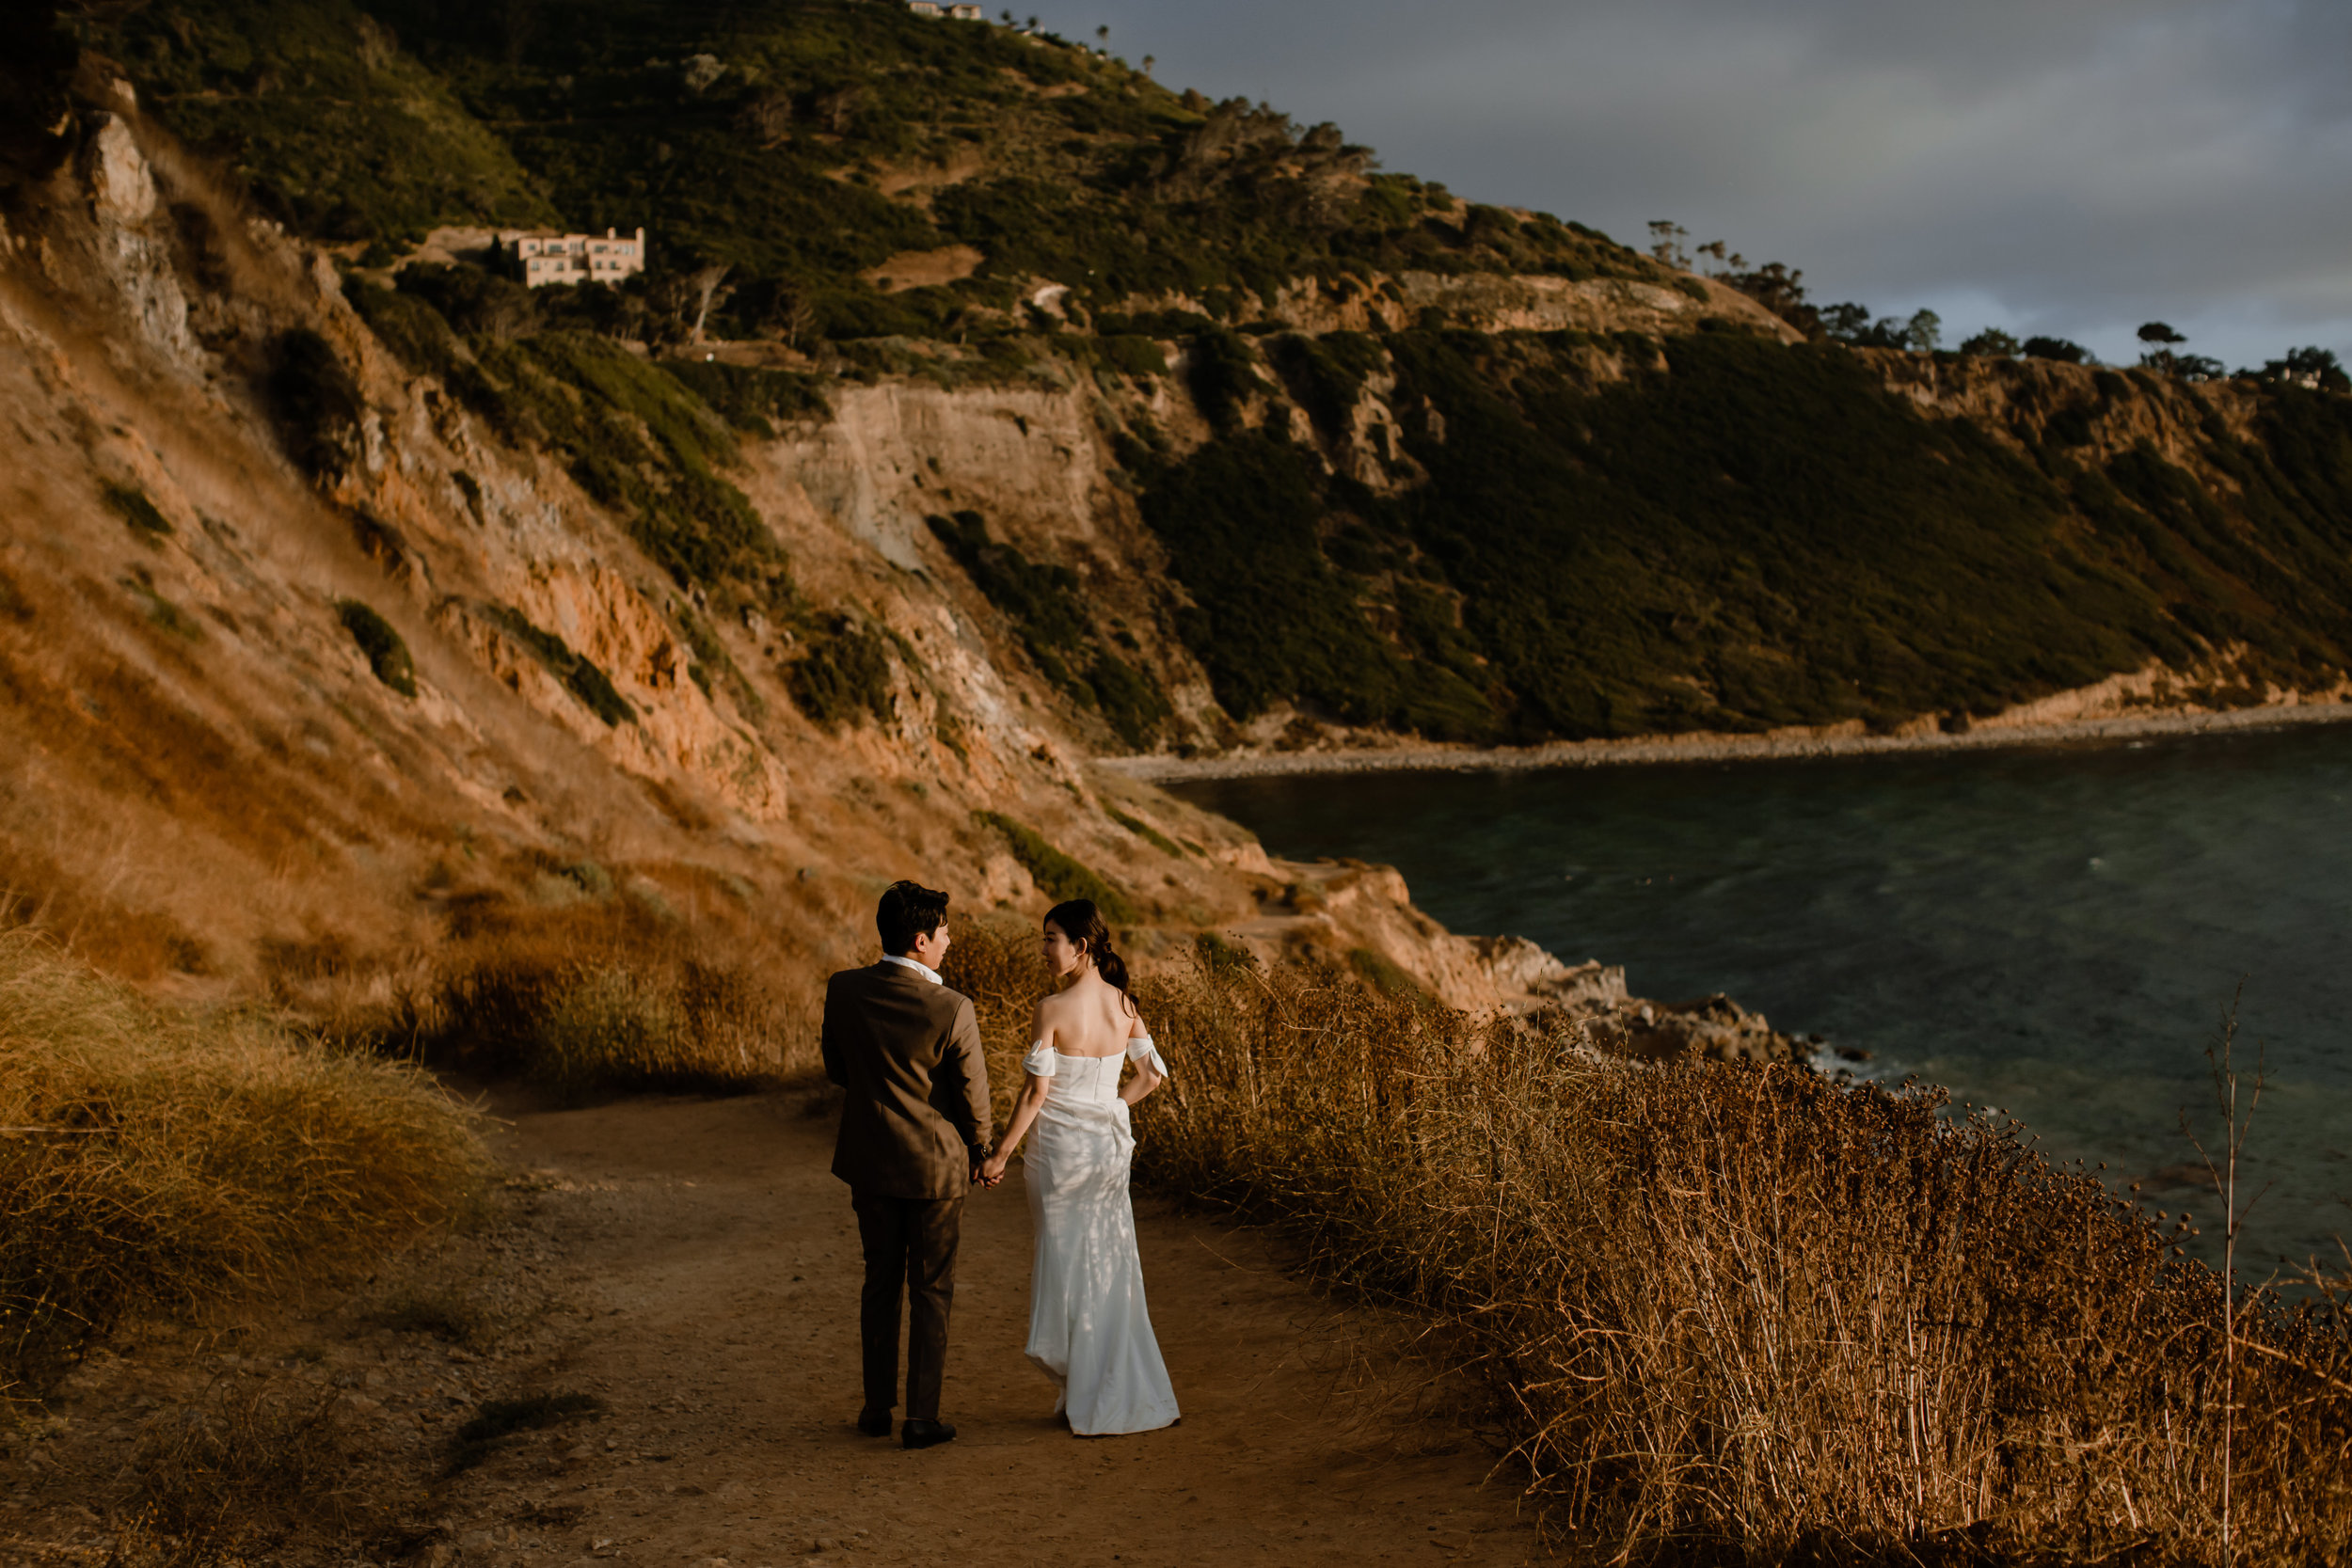 Jenny_and_Joe_Rancho_Palos_Verdes_Engagement_Session_-_Eve_Rox_Photography-103.jpg